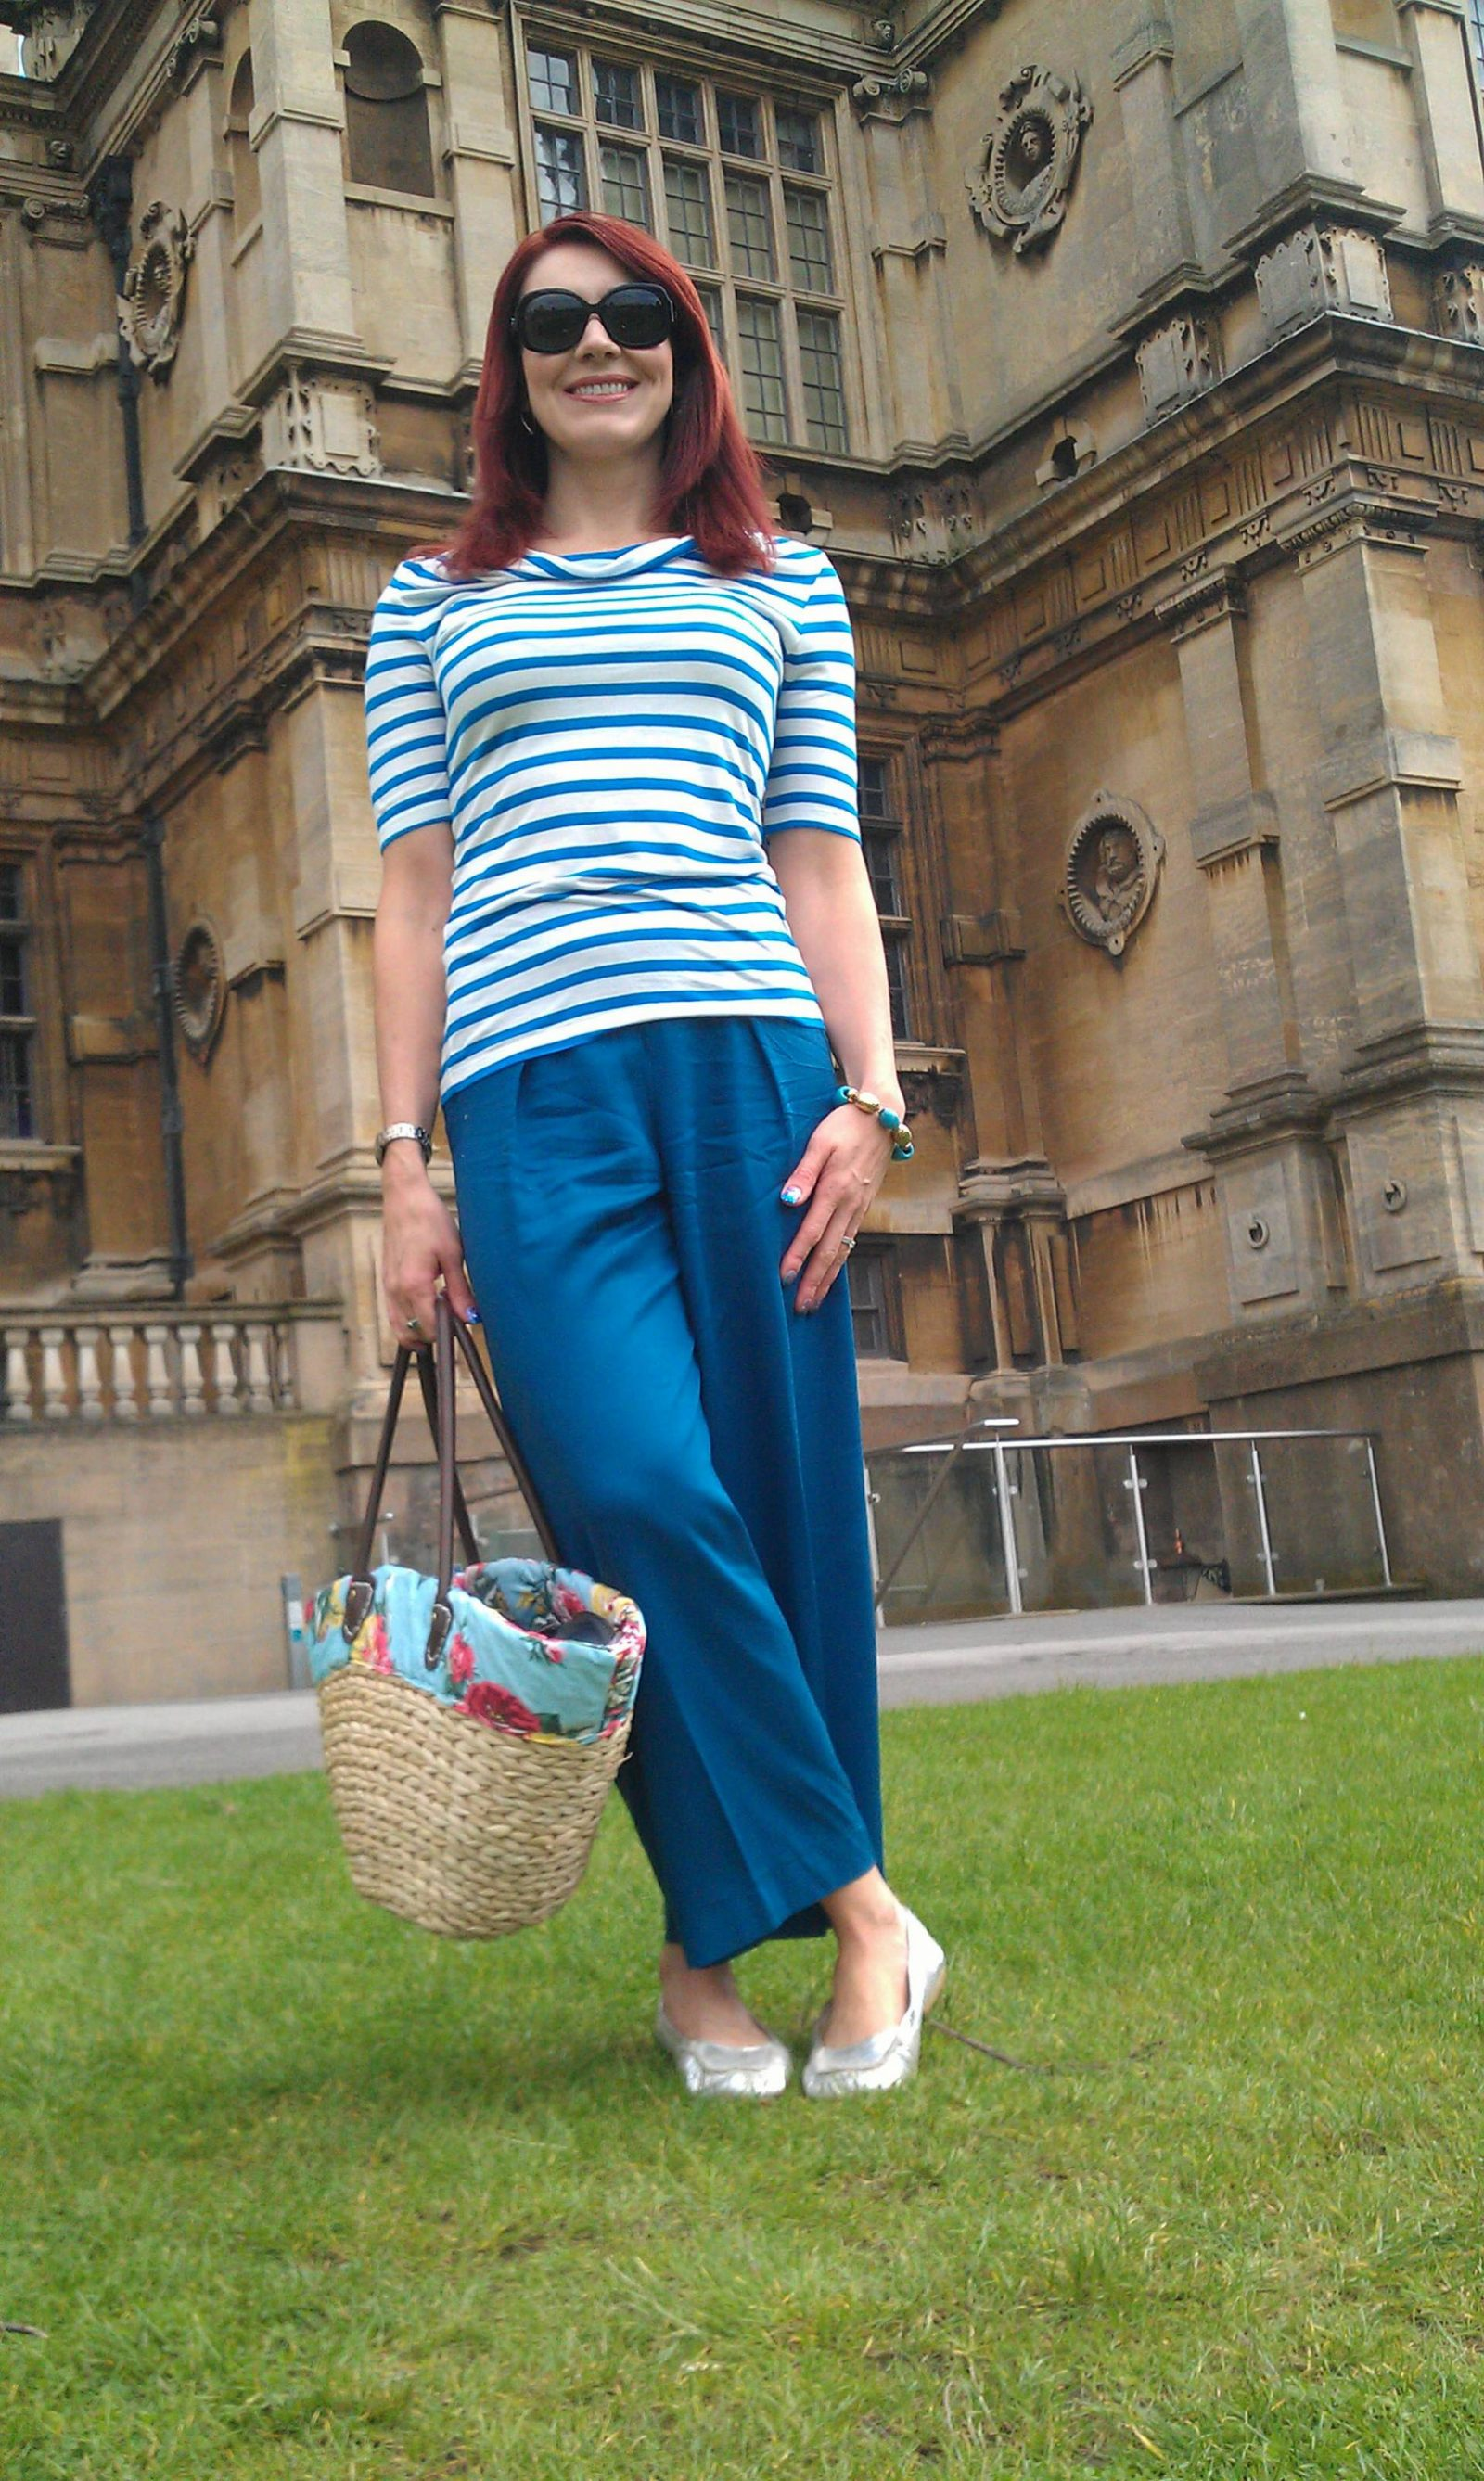 Sailor Girl culottes and Breton top